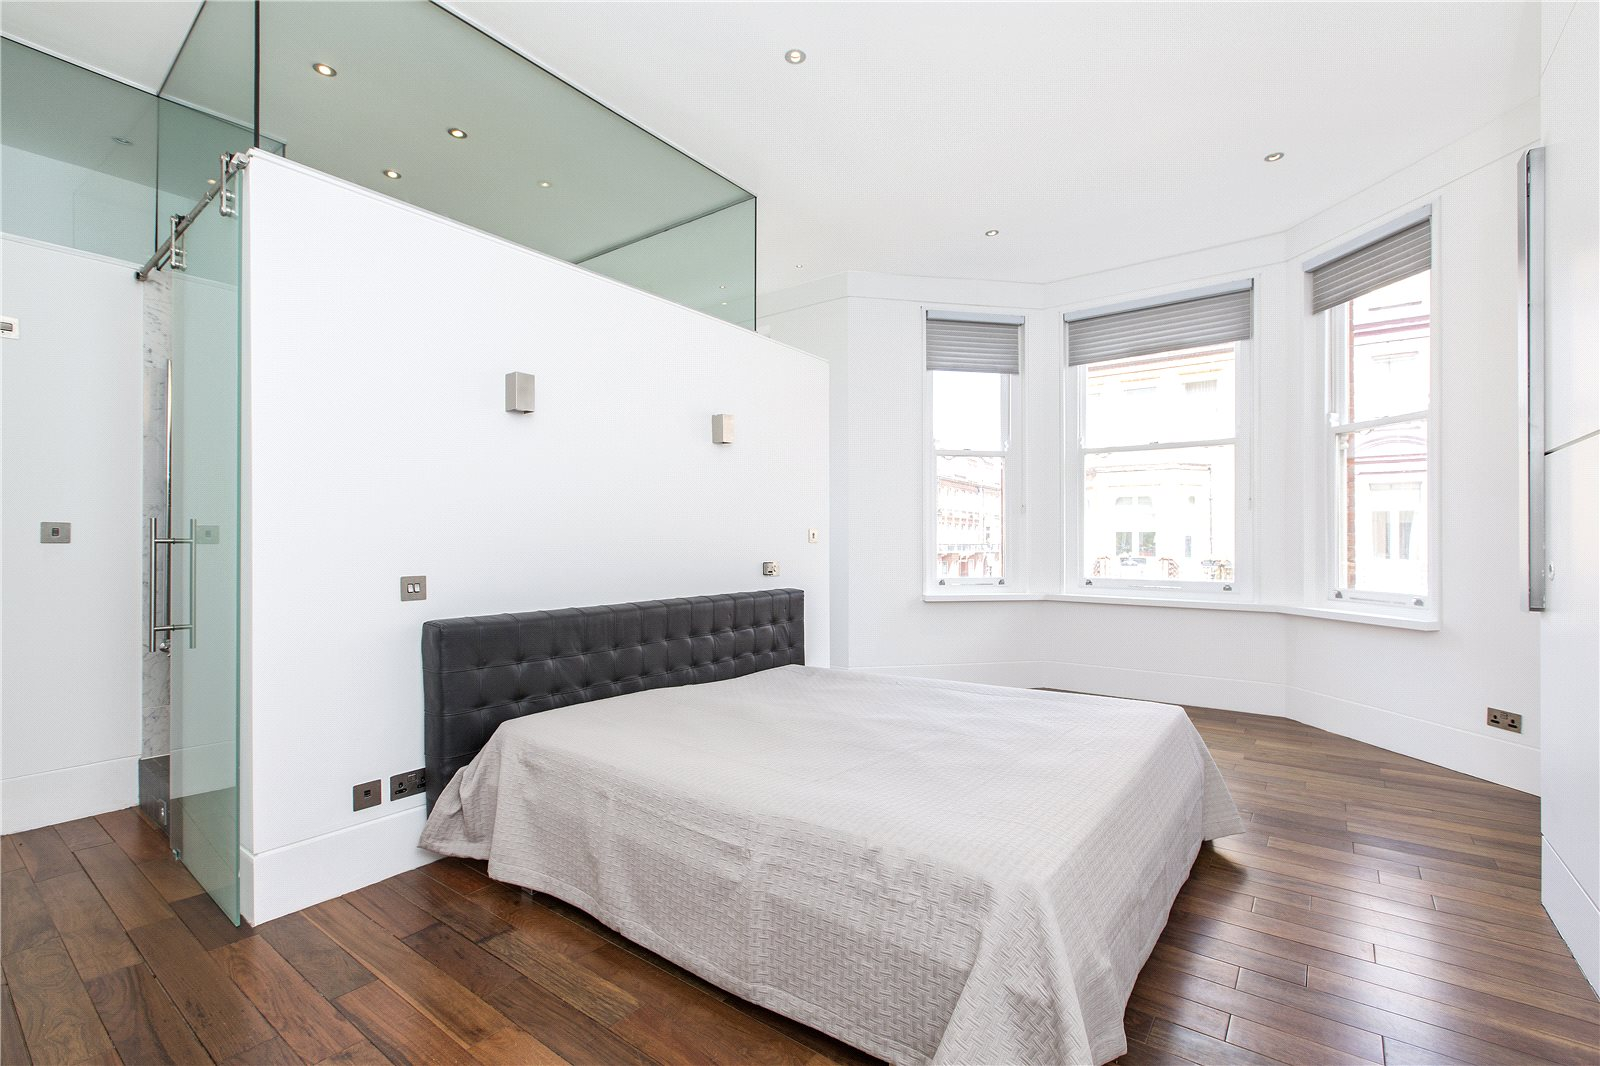 Additional photo for property listing at Brechin Place, South Kensington, London, SW7 South Kensington, London, Αγγλια